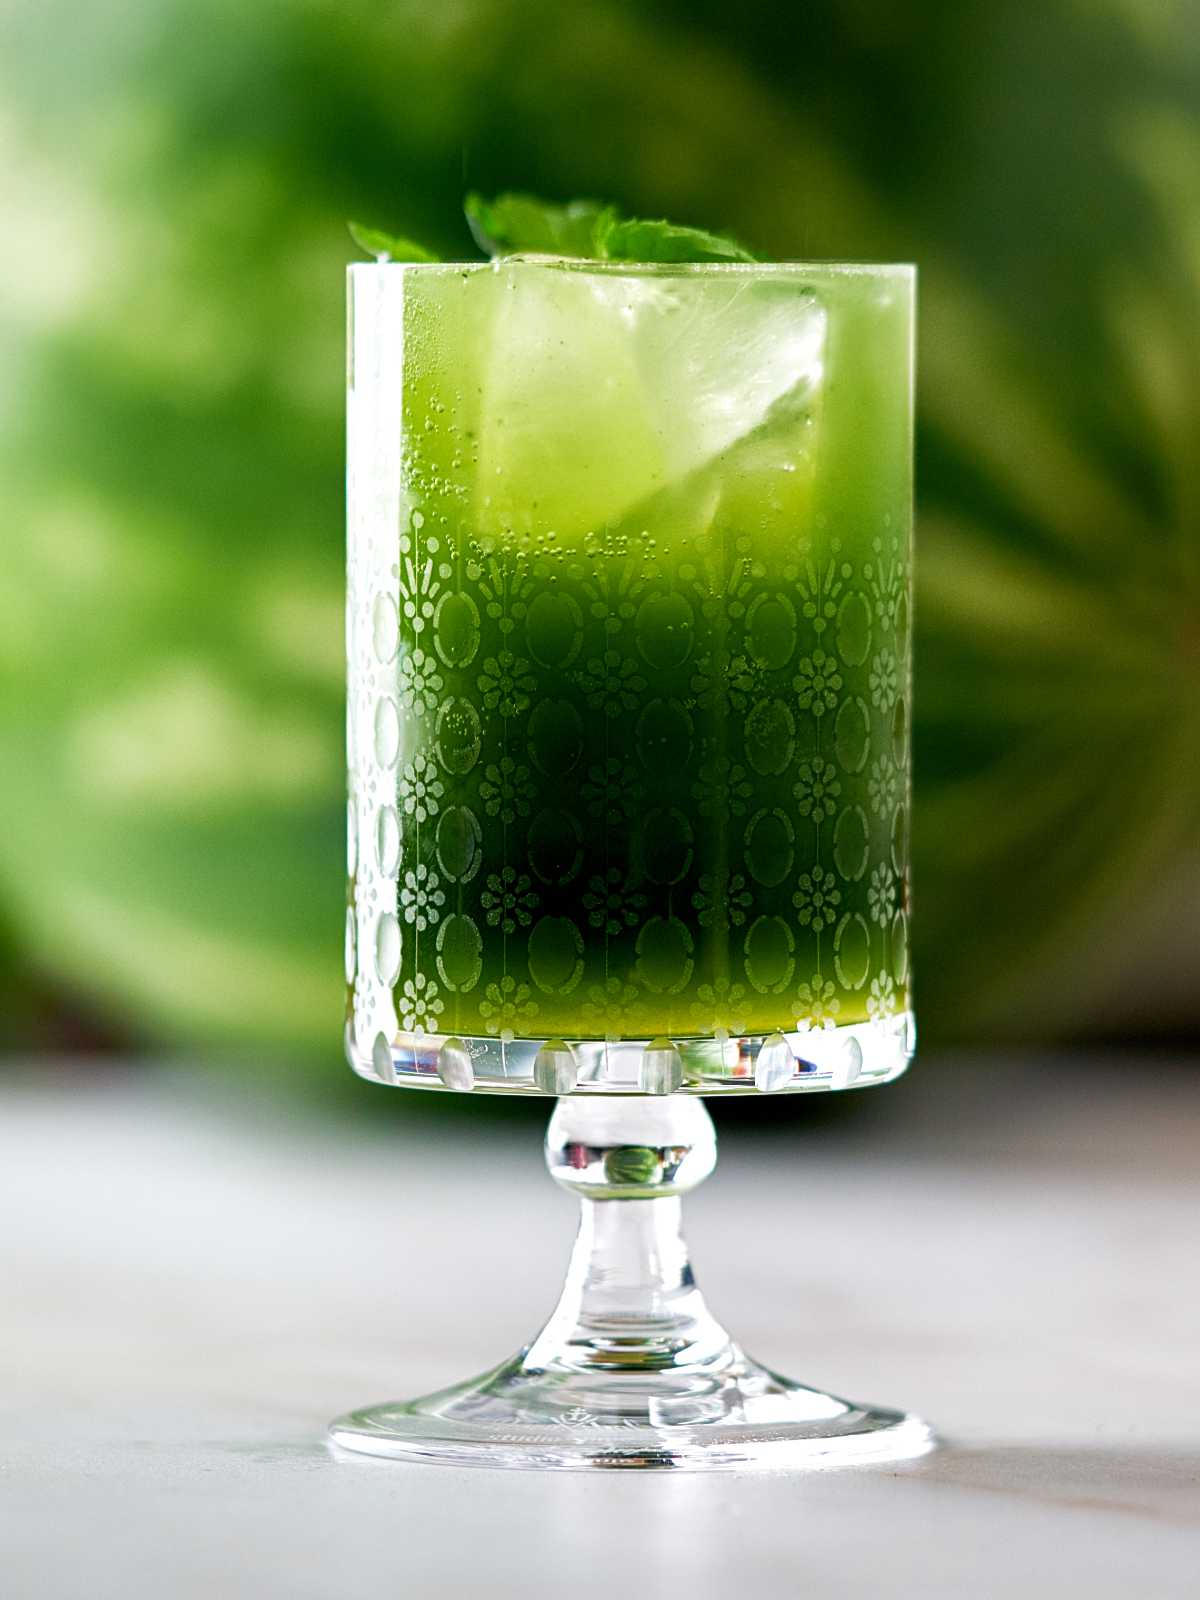 Green drink with ice and mint.